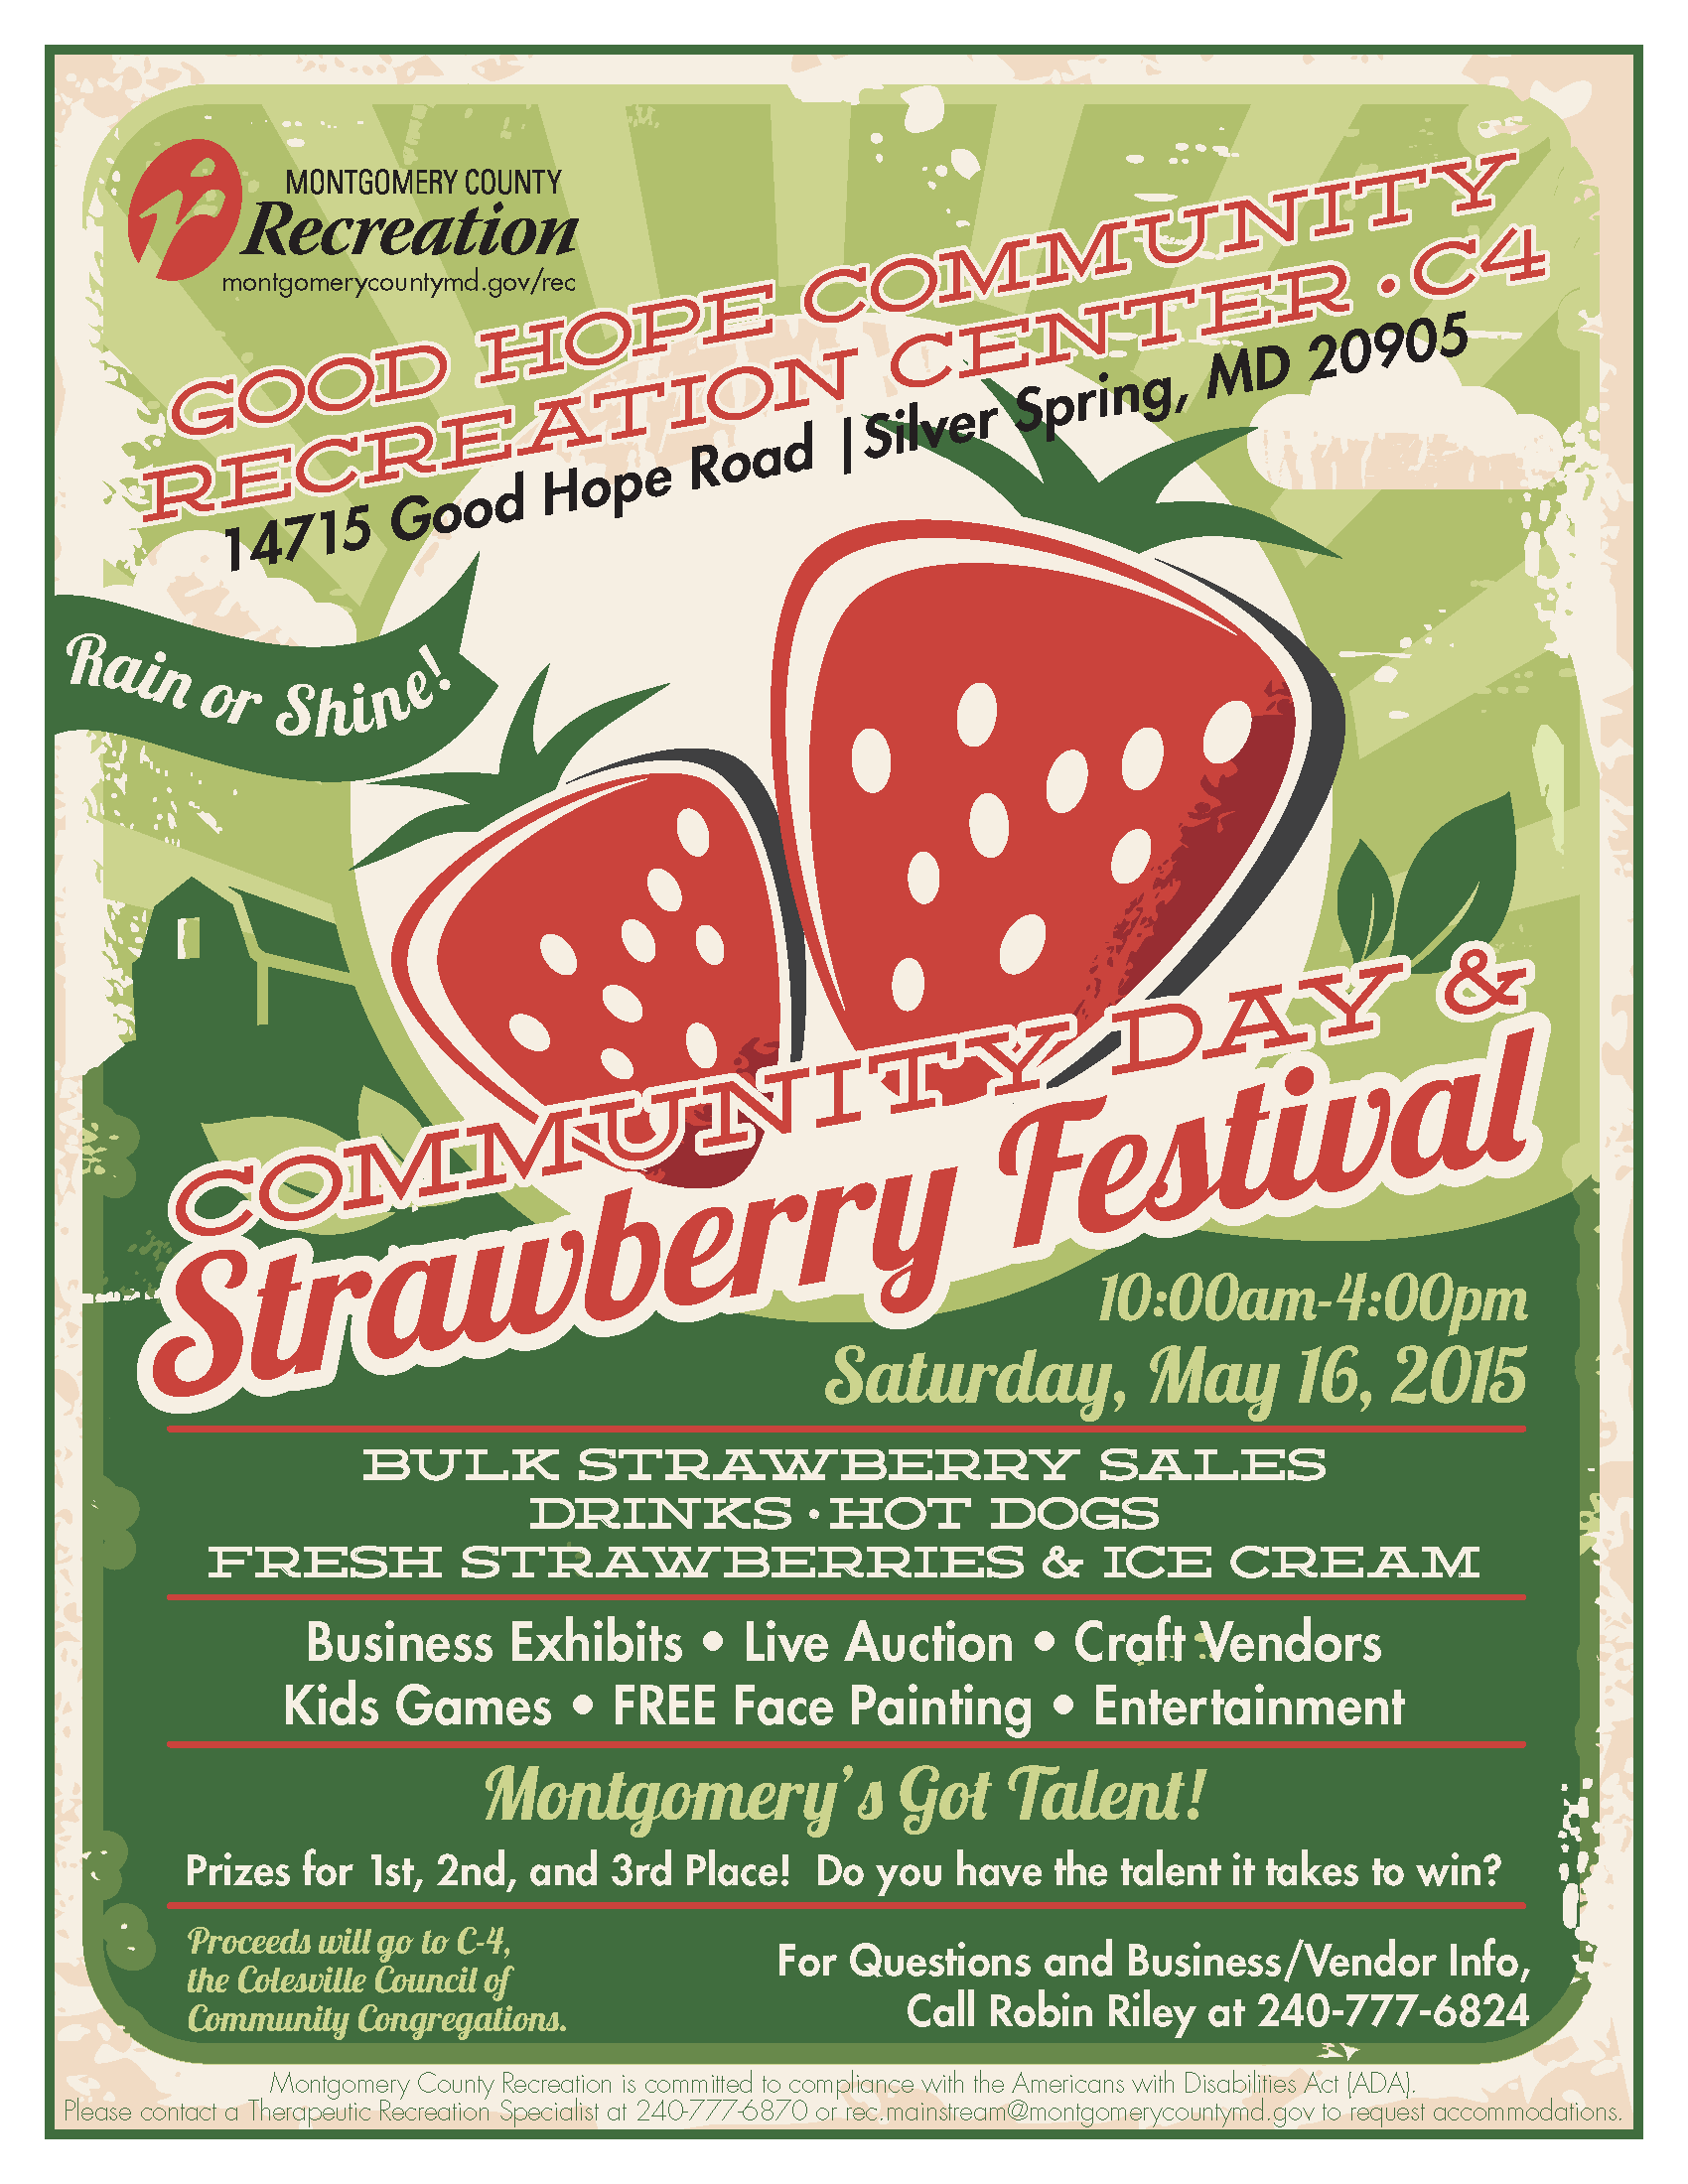 The annual Community Day and Strawberry Festival at Good Hope Recreation Center, May 16.